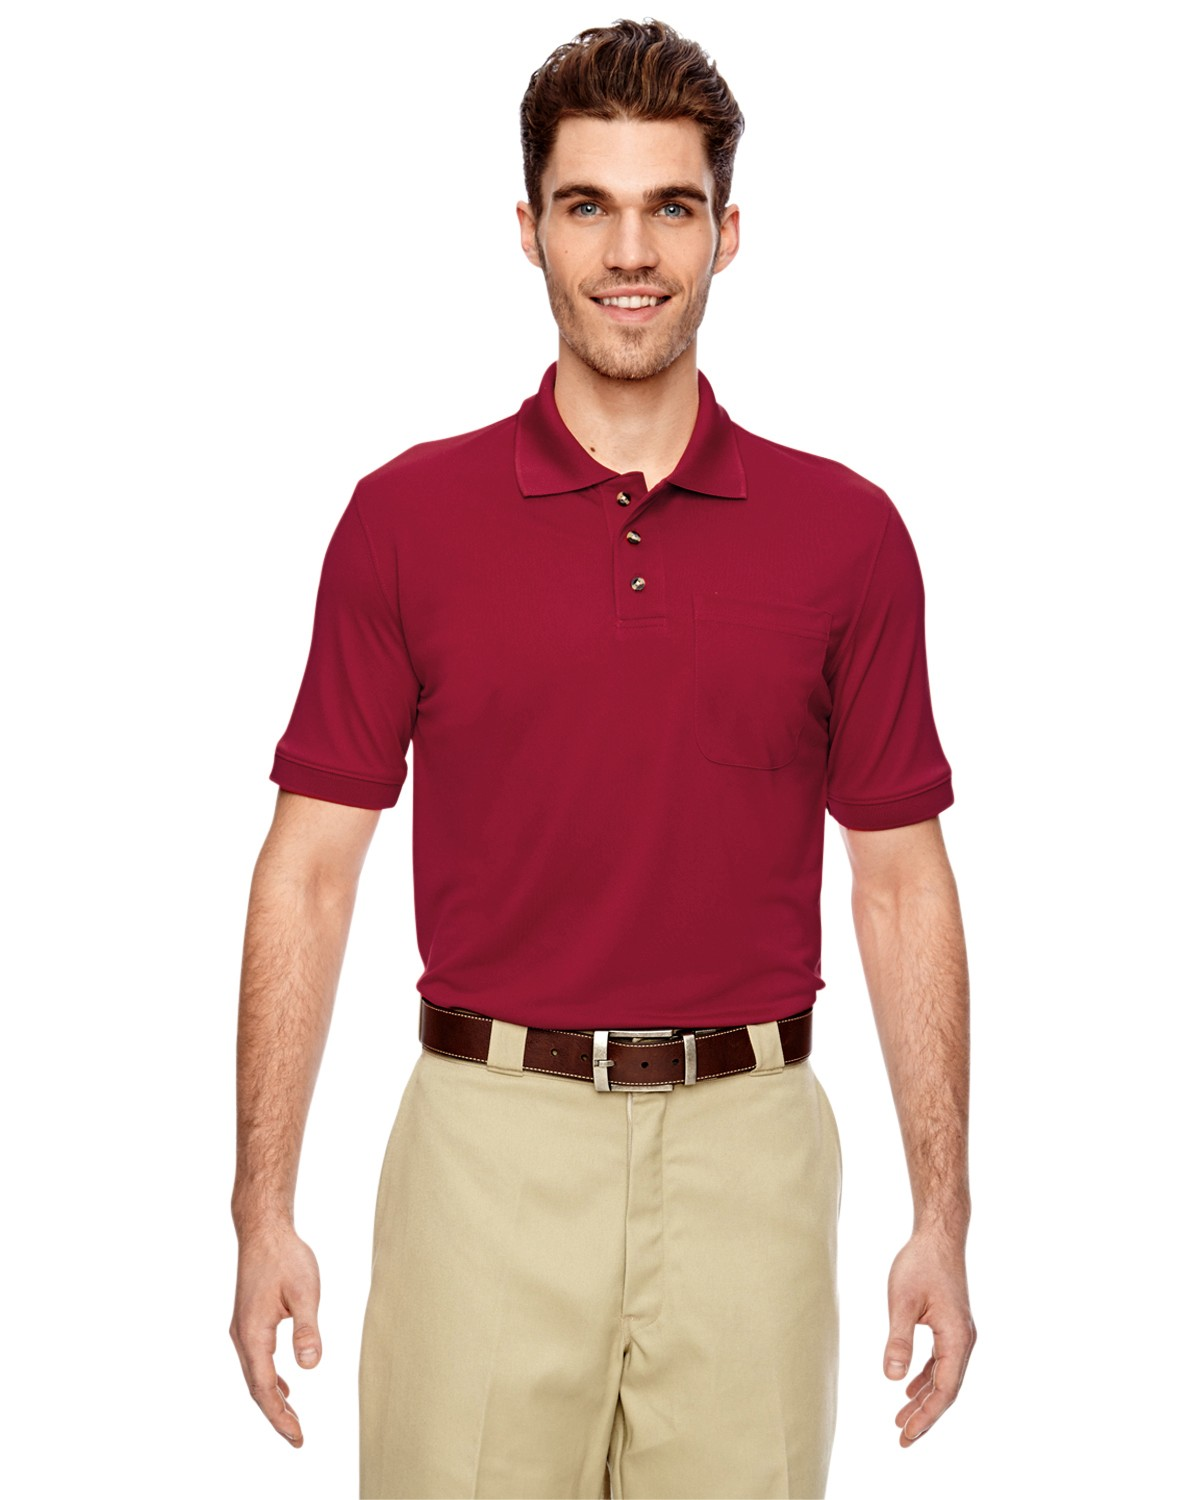 LS404 Dickies ENGLISH RED